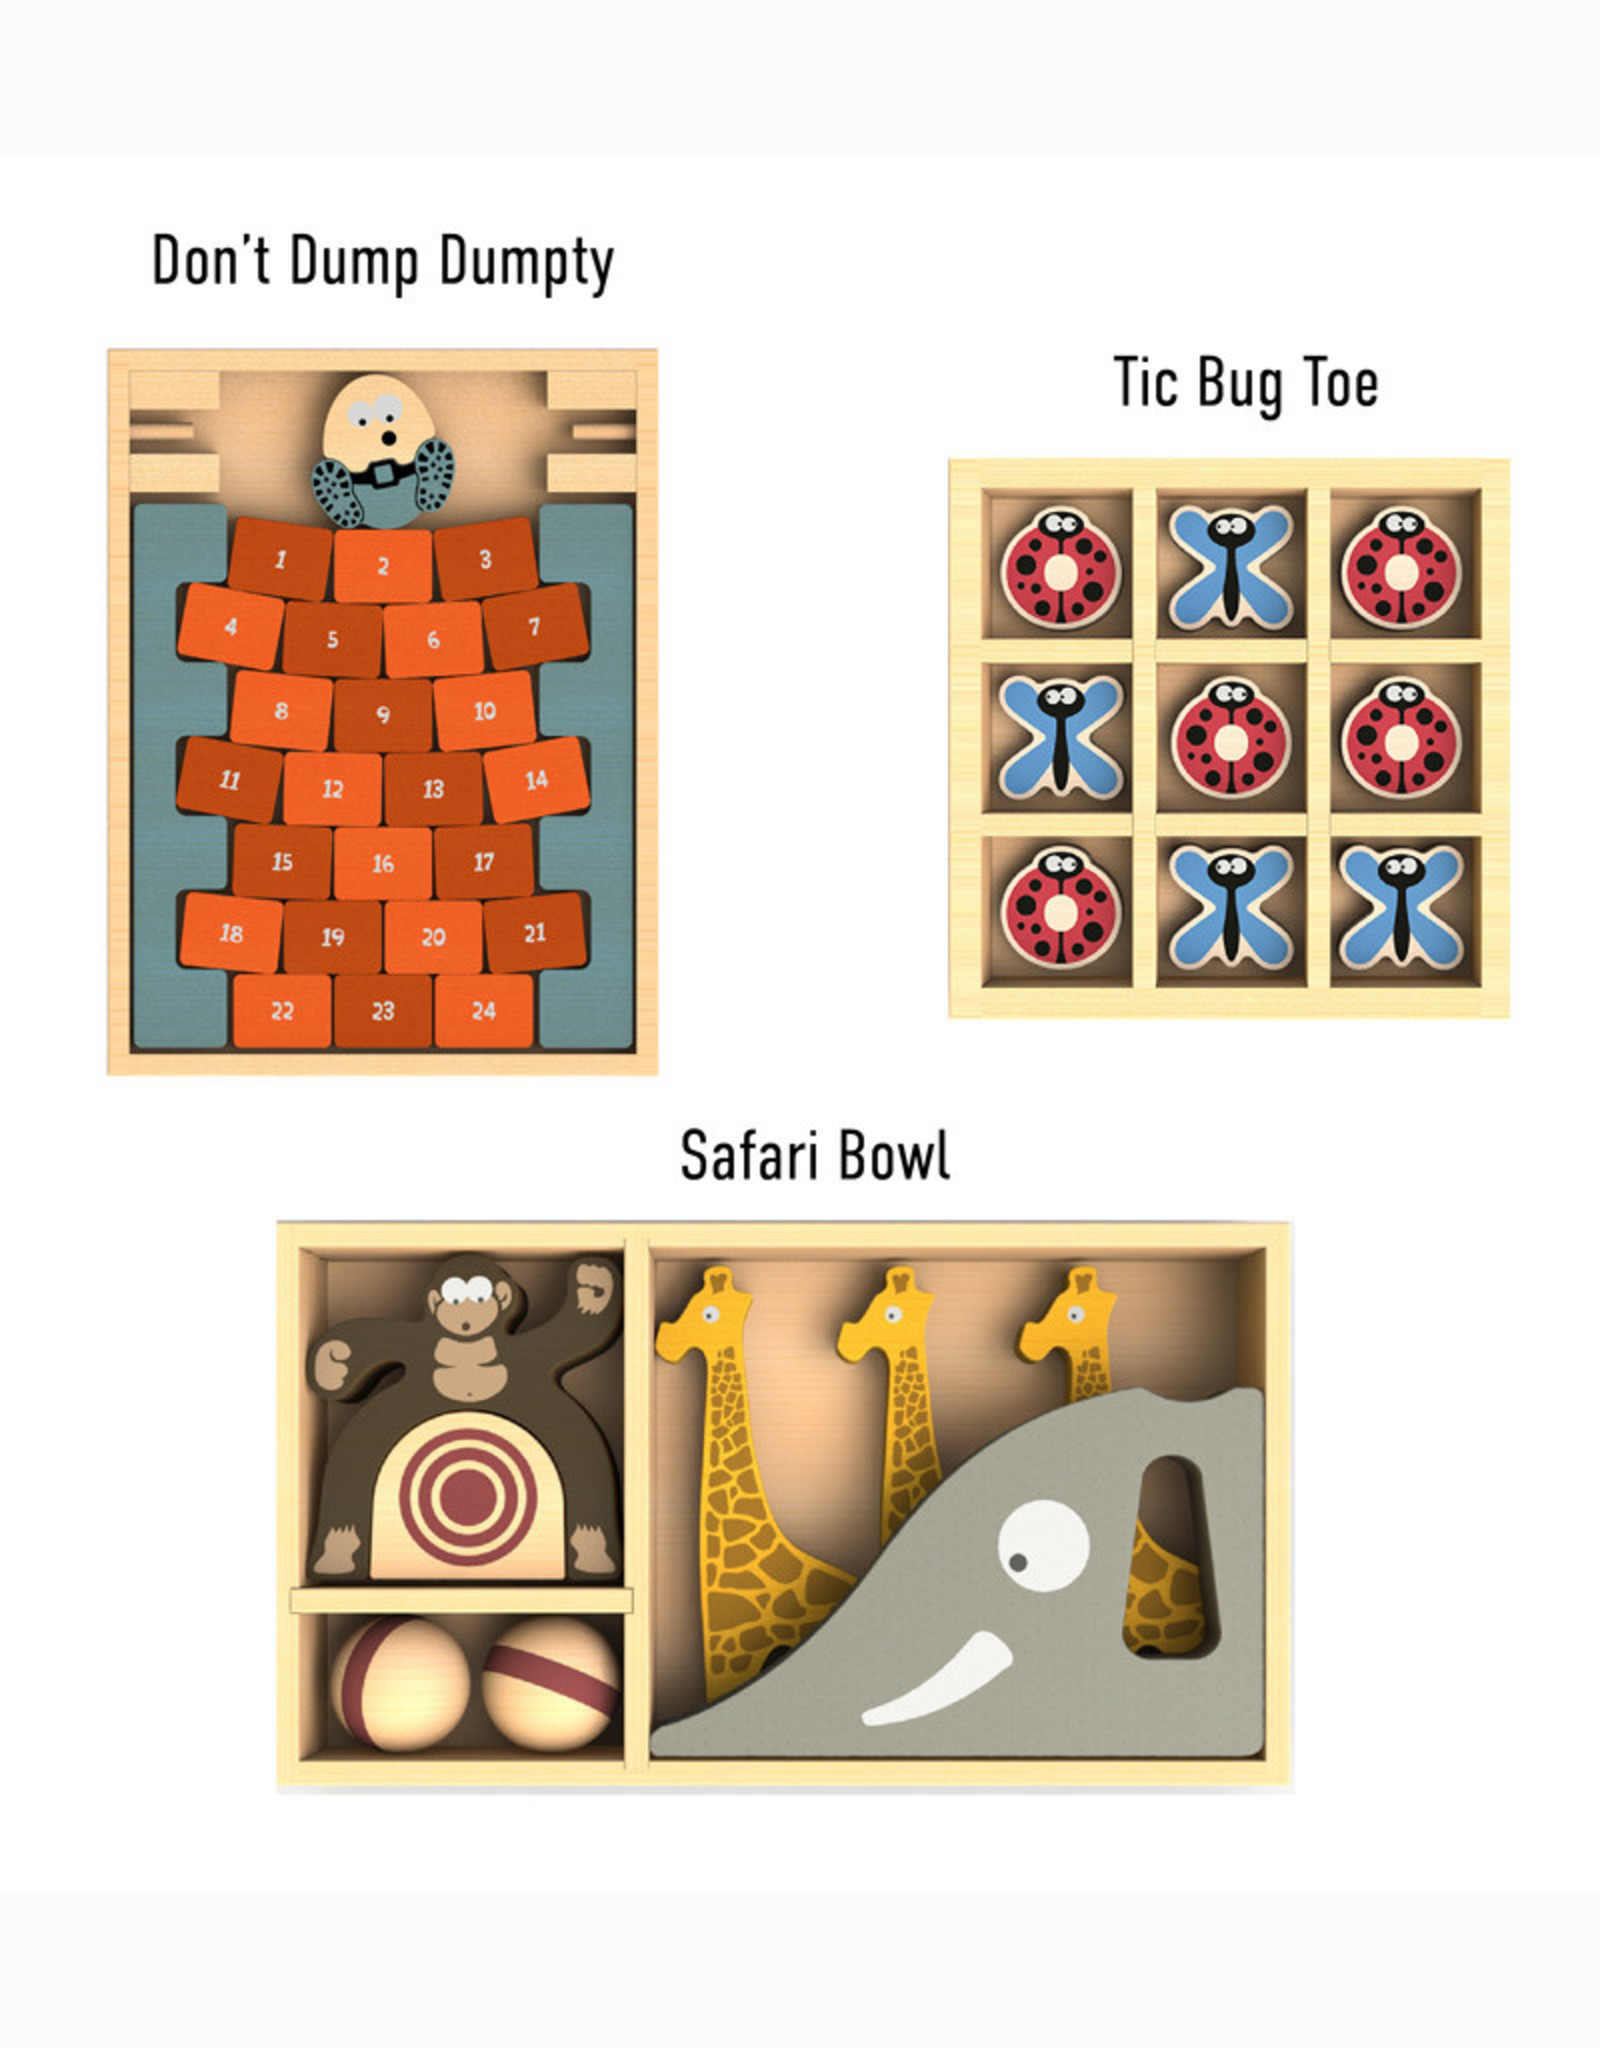 BeginAgain Game Bundle: Don't Dump Dumpty, Safari Bowl, TicBugToe